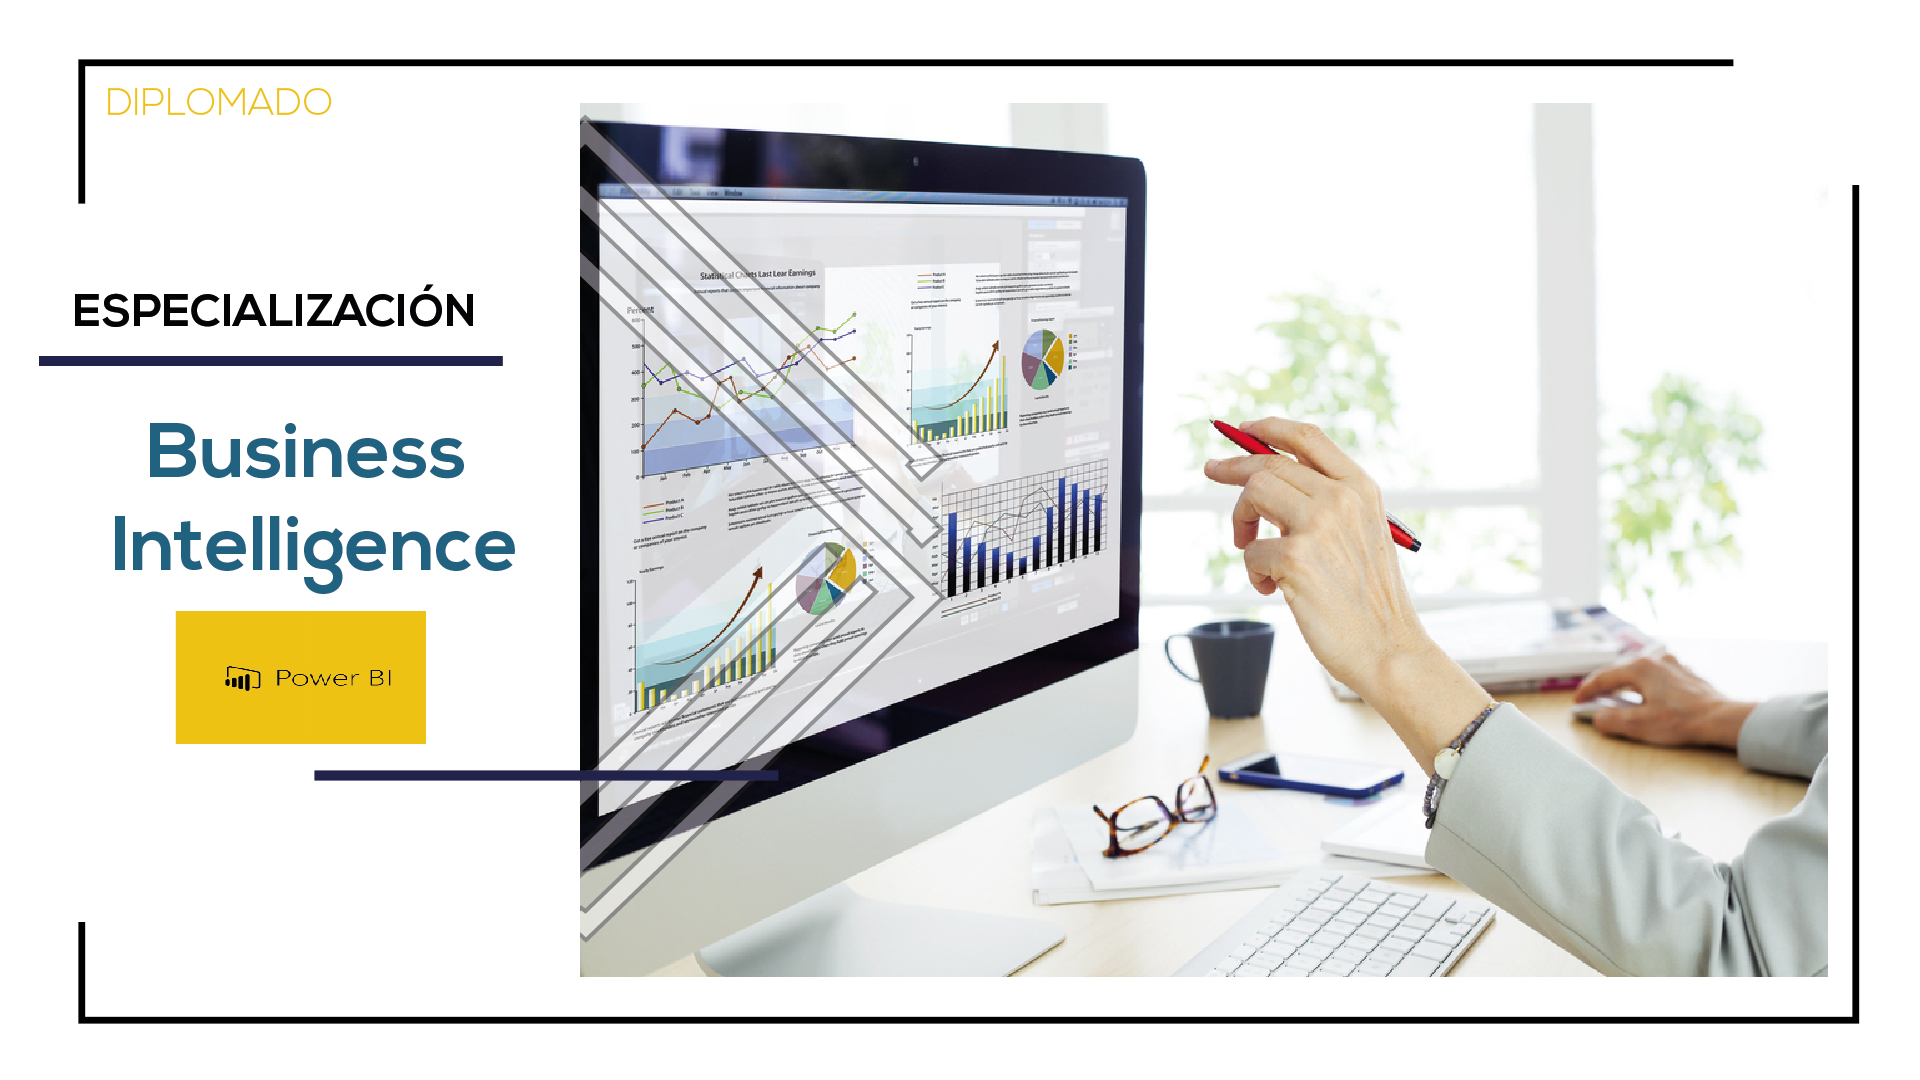 Especialización en Business Intelligence con Power BI